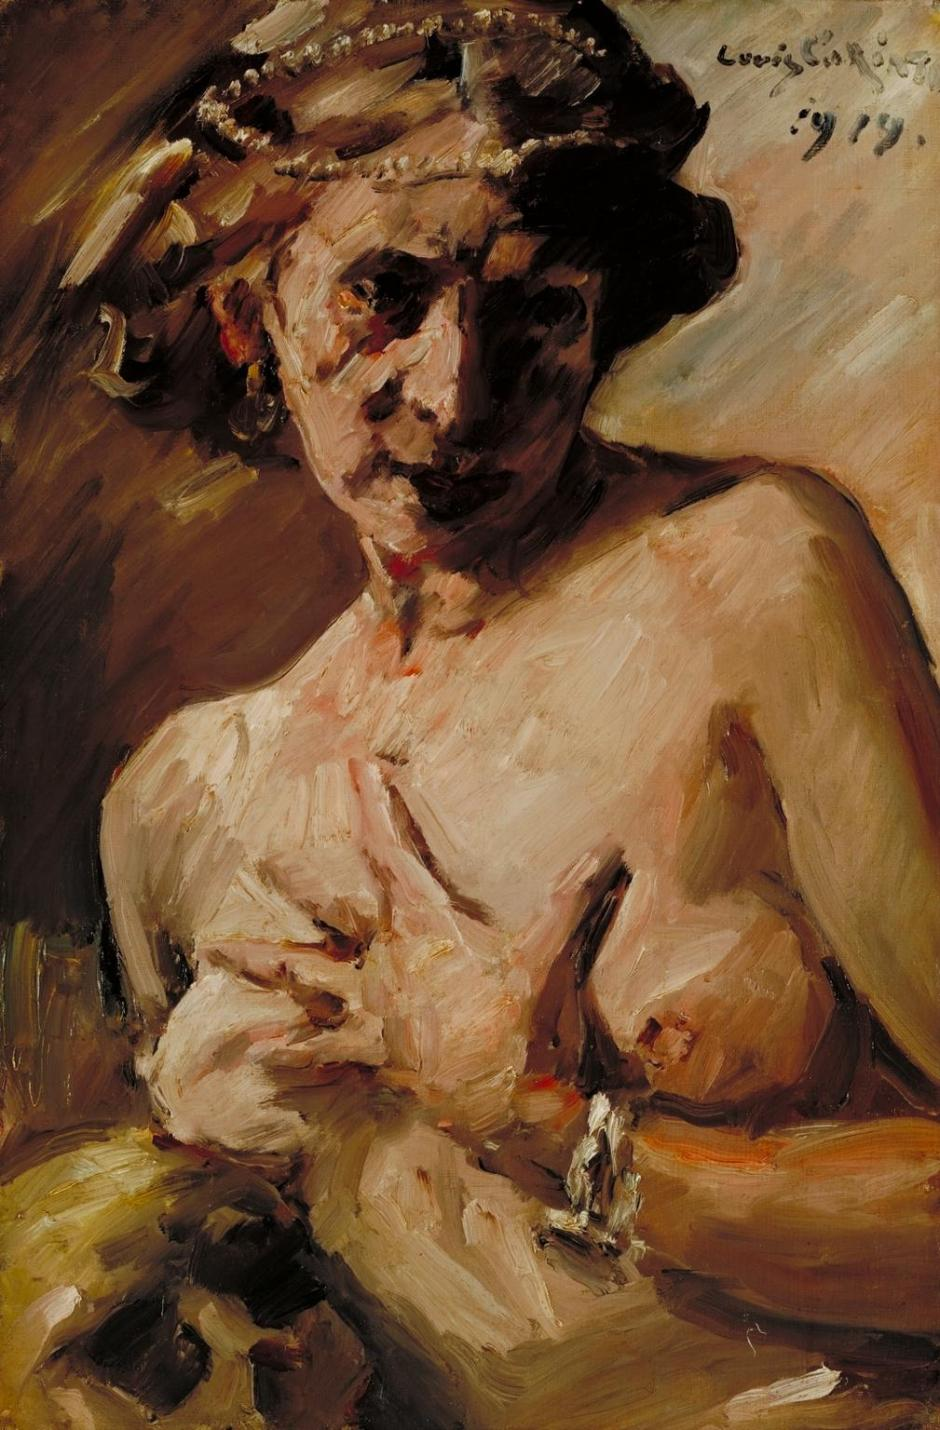 Magdalen with Pearls in her Hair 1919 by Lovis Corinth 1858-1925